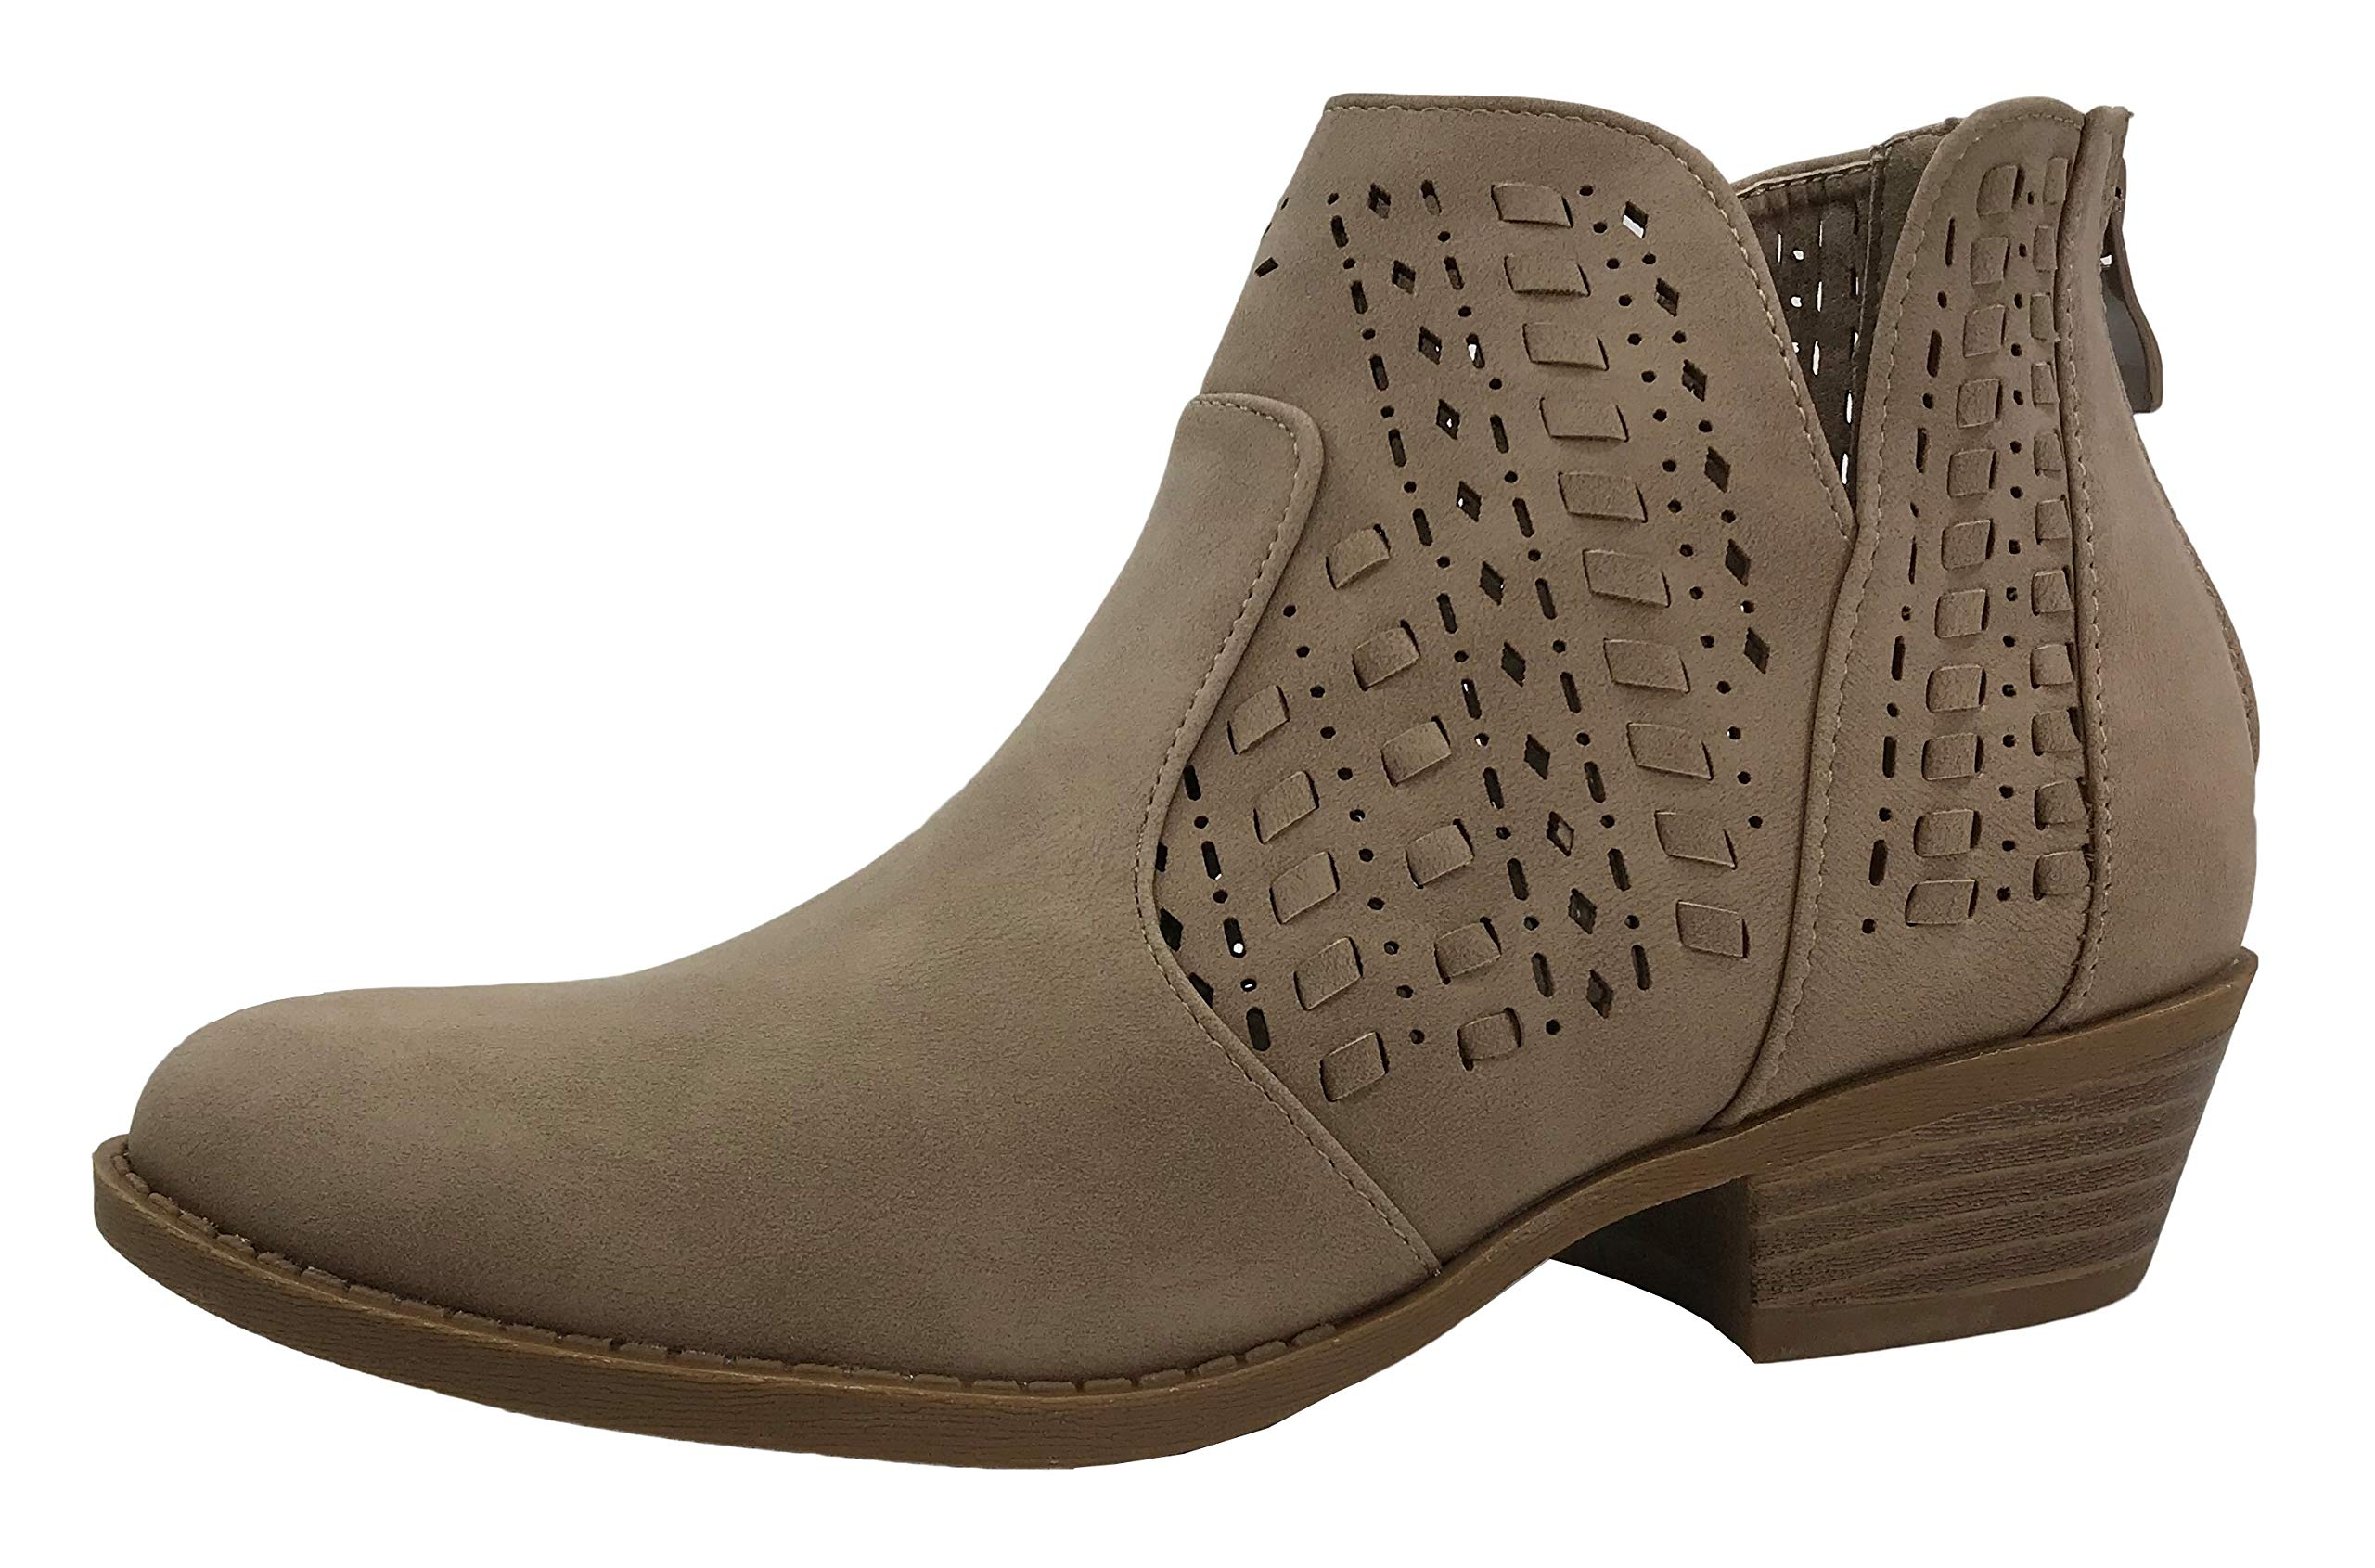 Top Moda Women's Ankle Bootie Perforated Side V Cut Low Chunky Stacked Heel, Khaki, 8.5